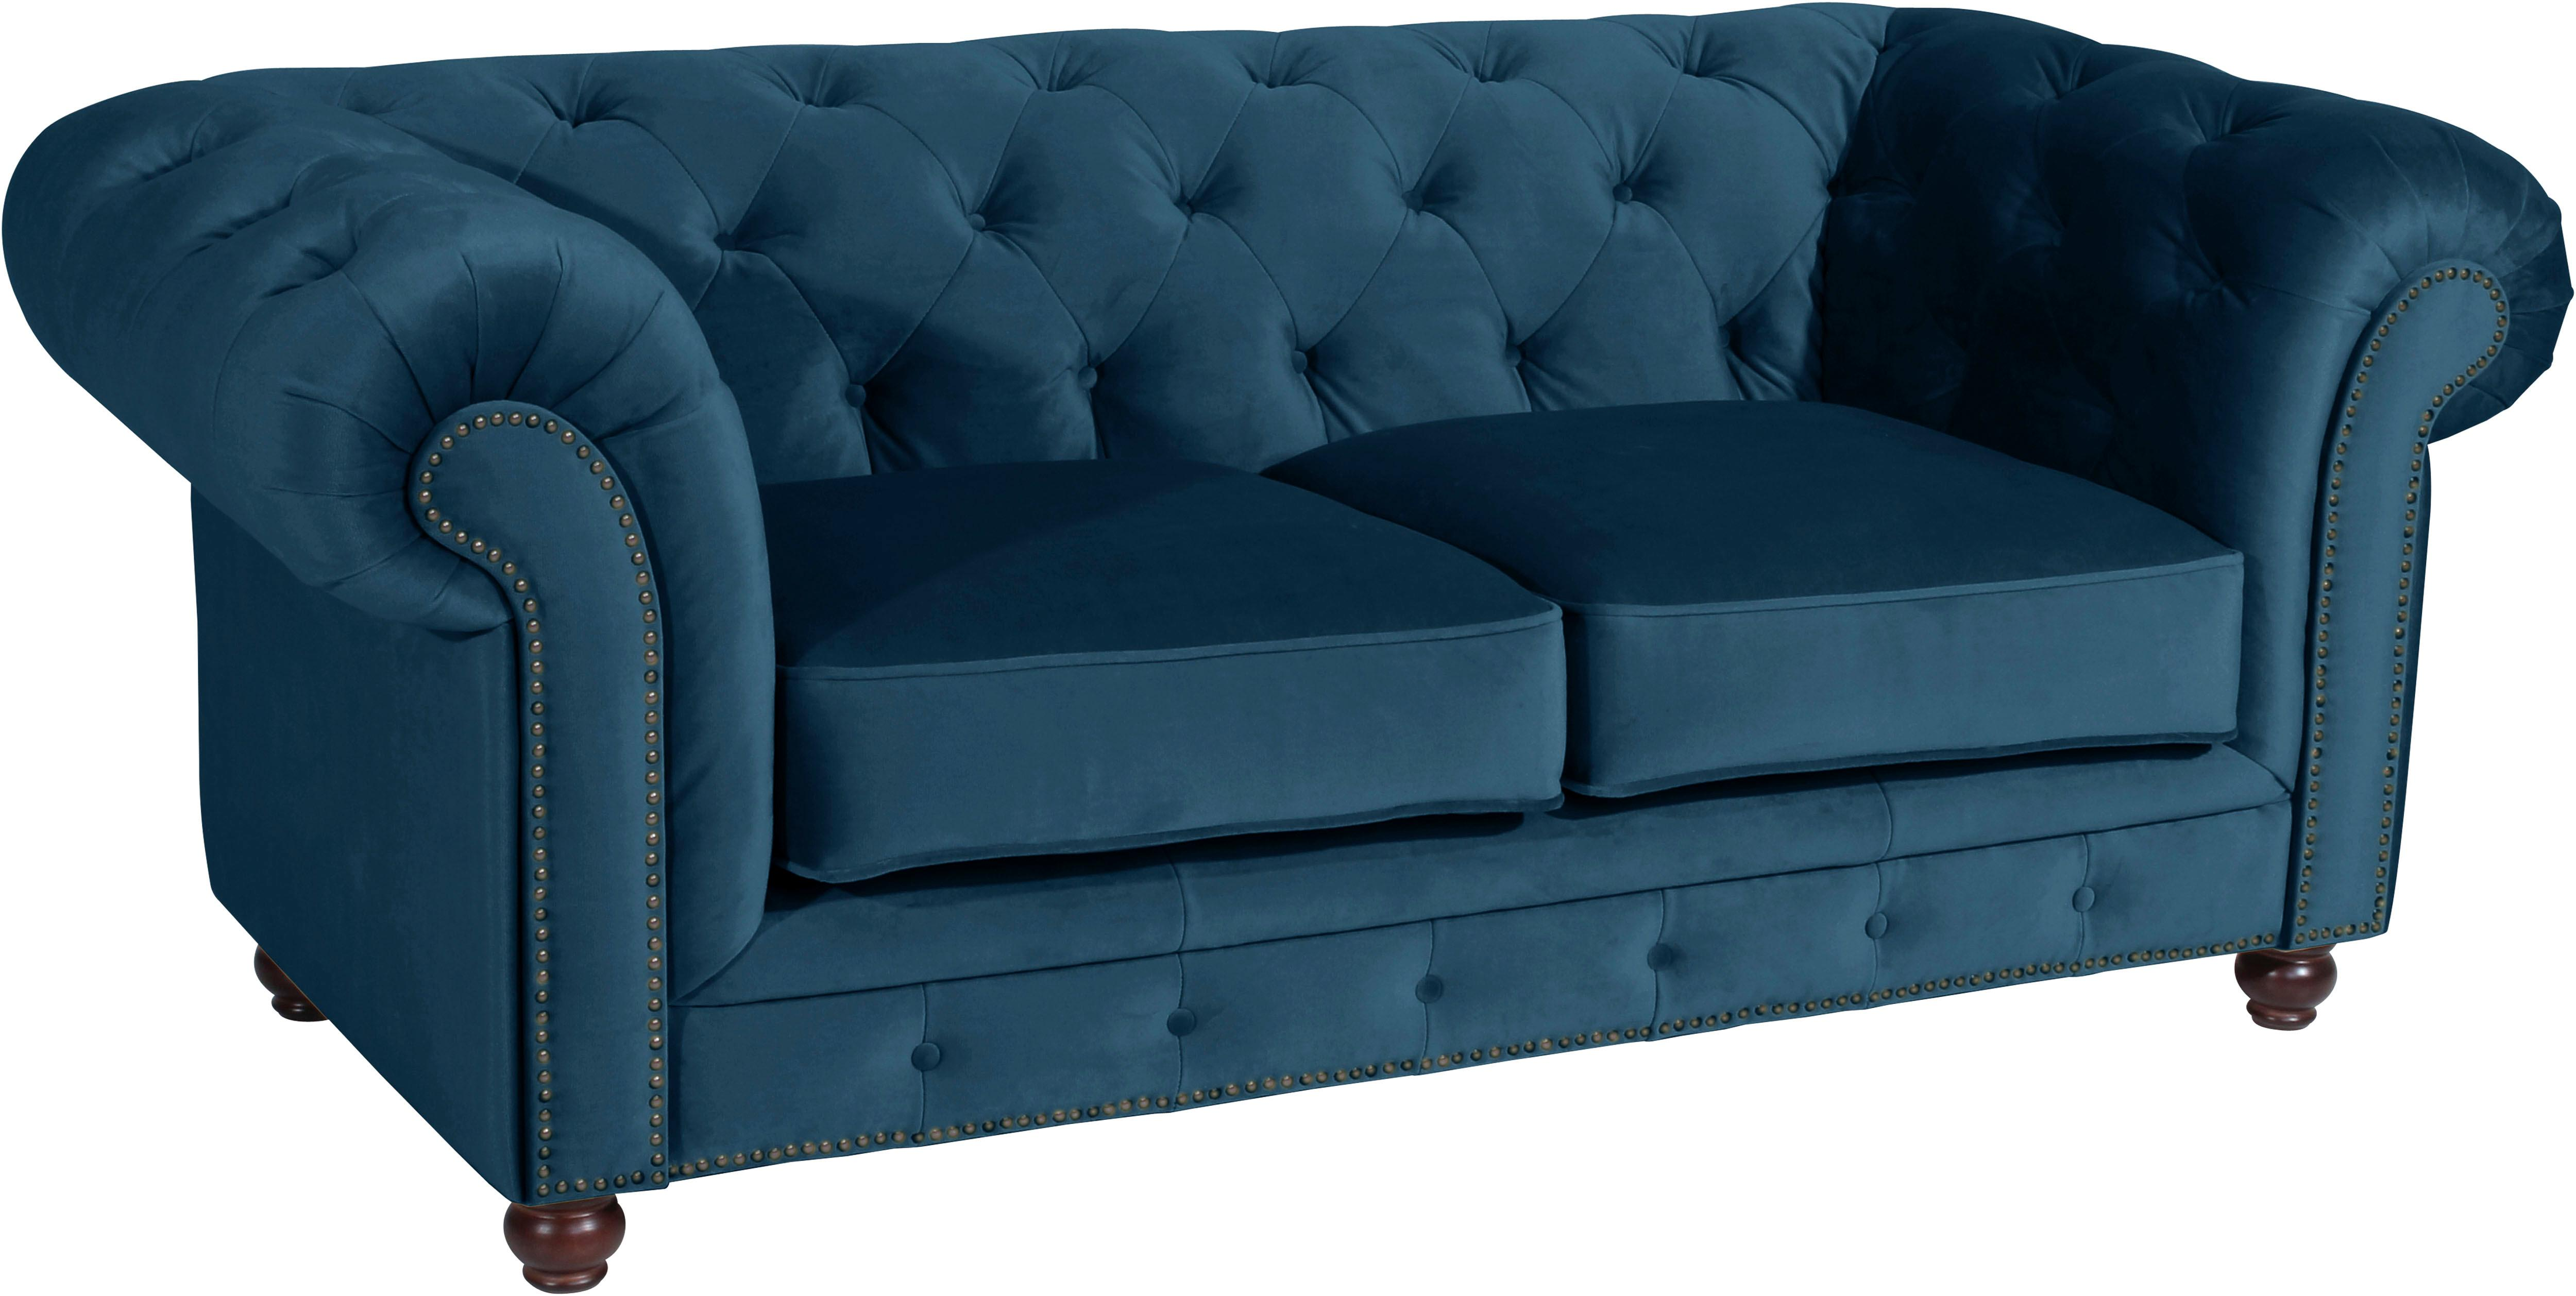 Max Winzer Chesterfield-Sofa Old England